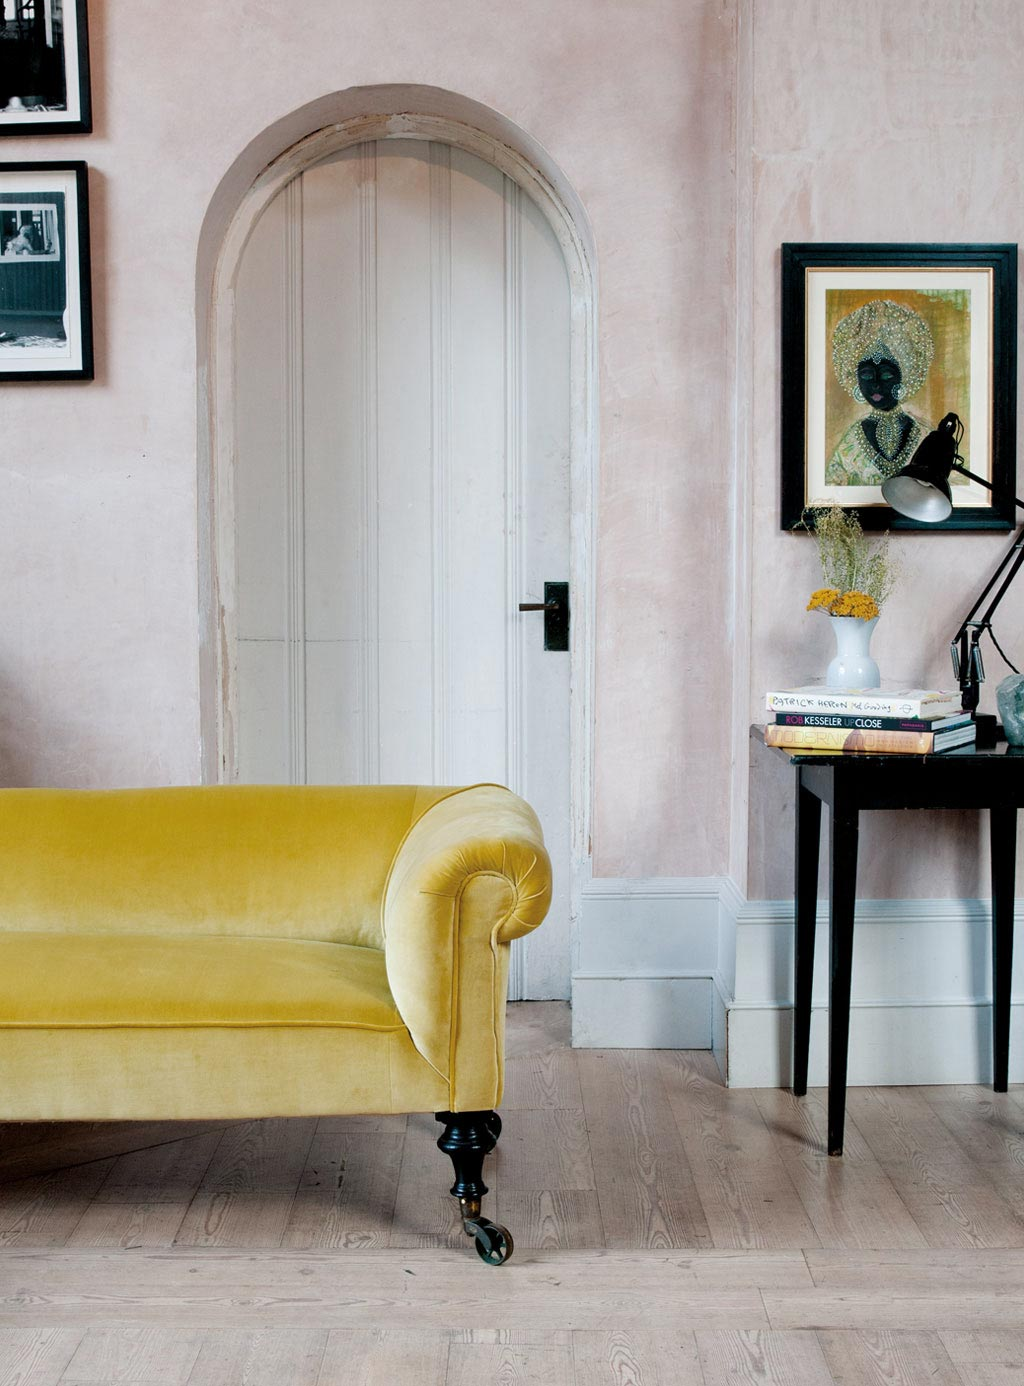 velvet-yellow-sofa-2